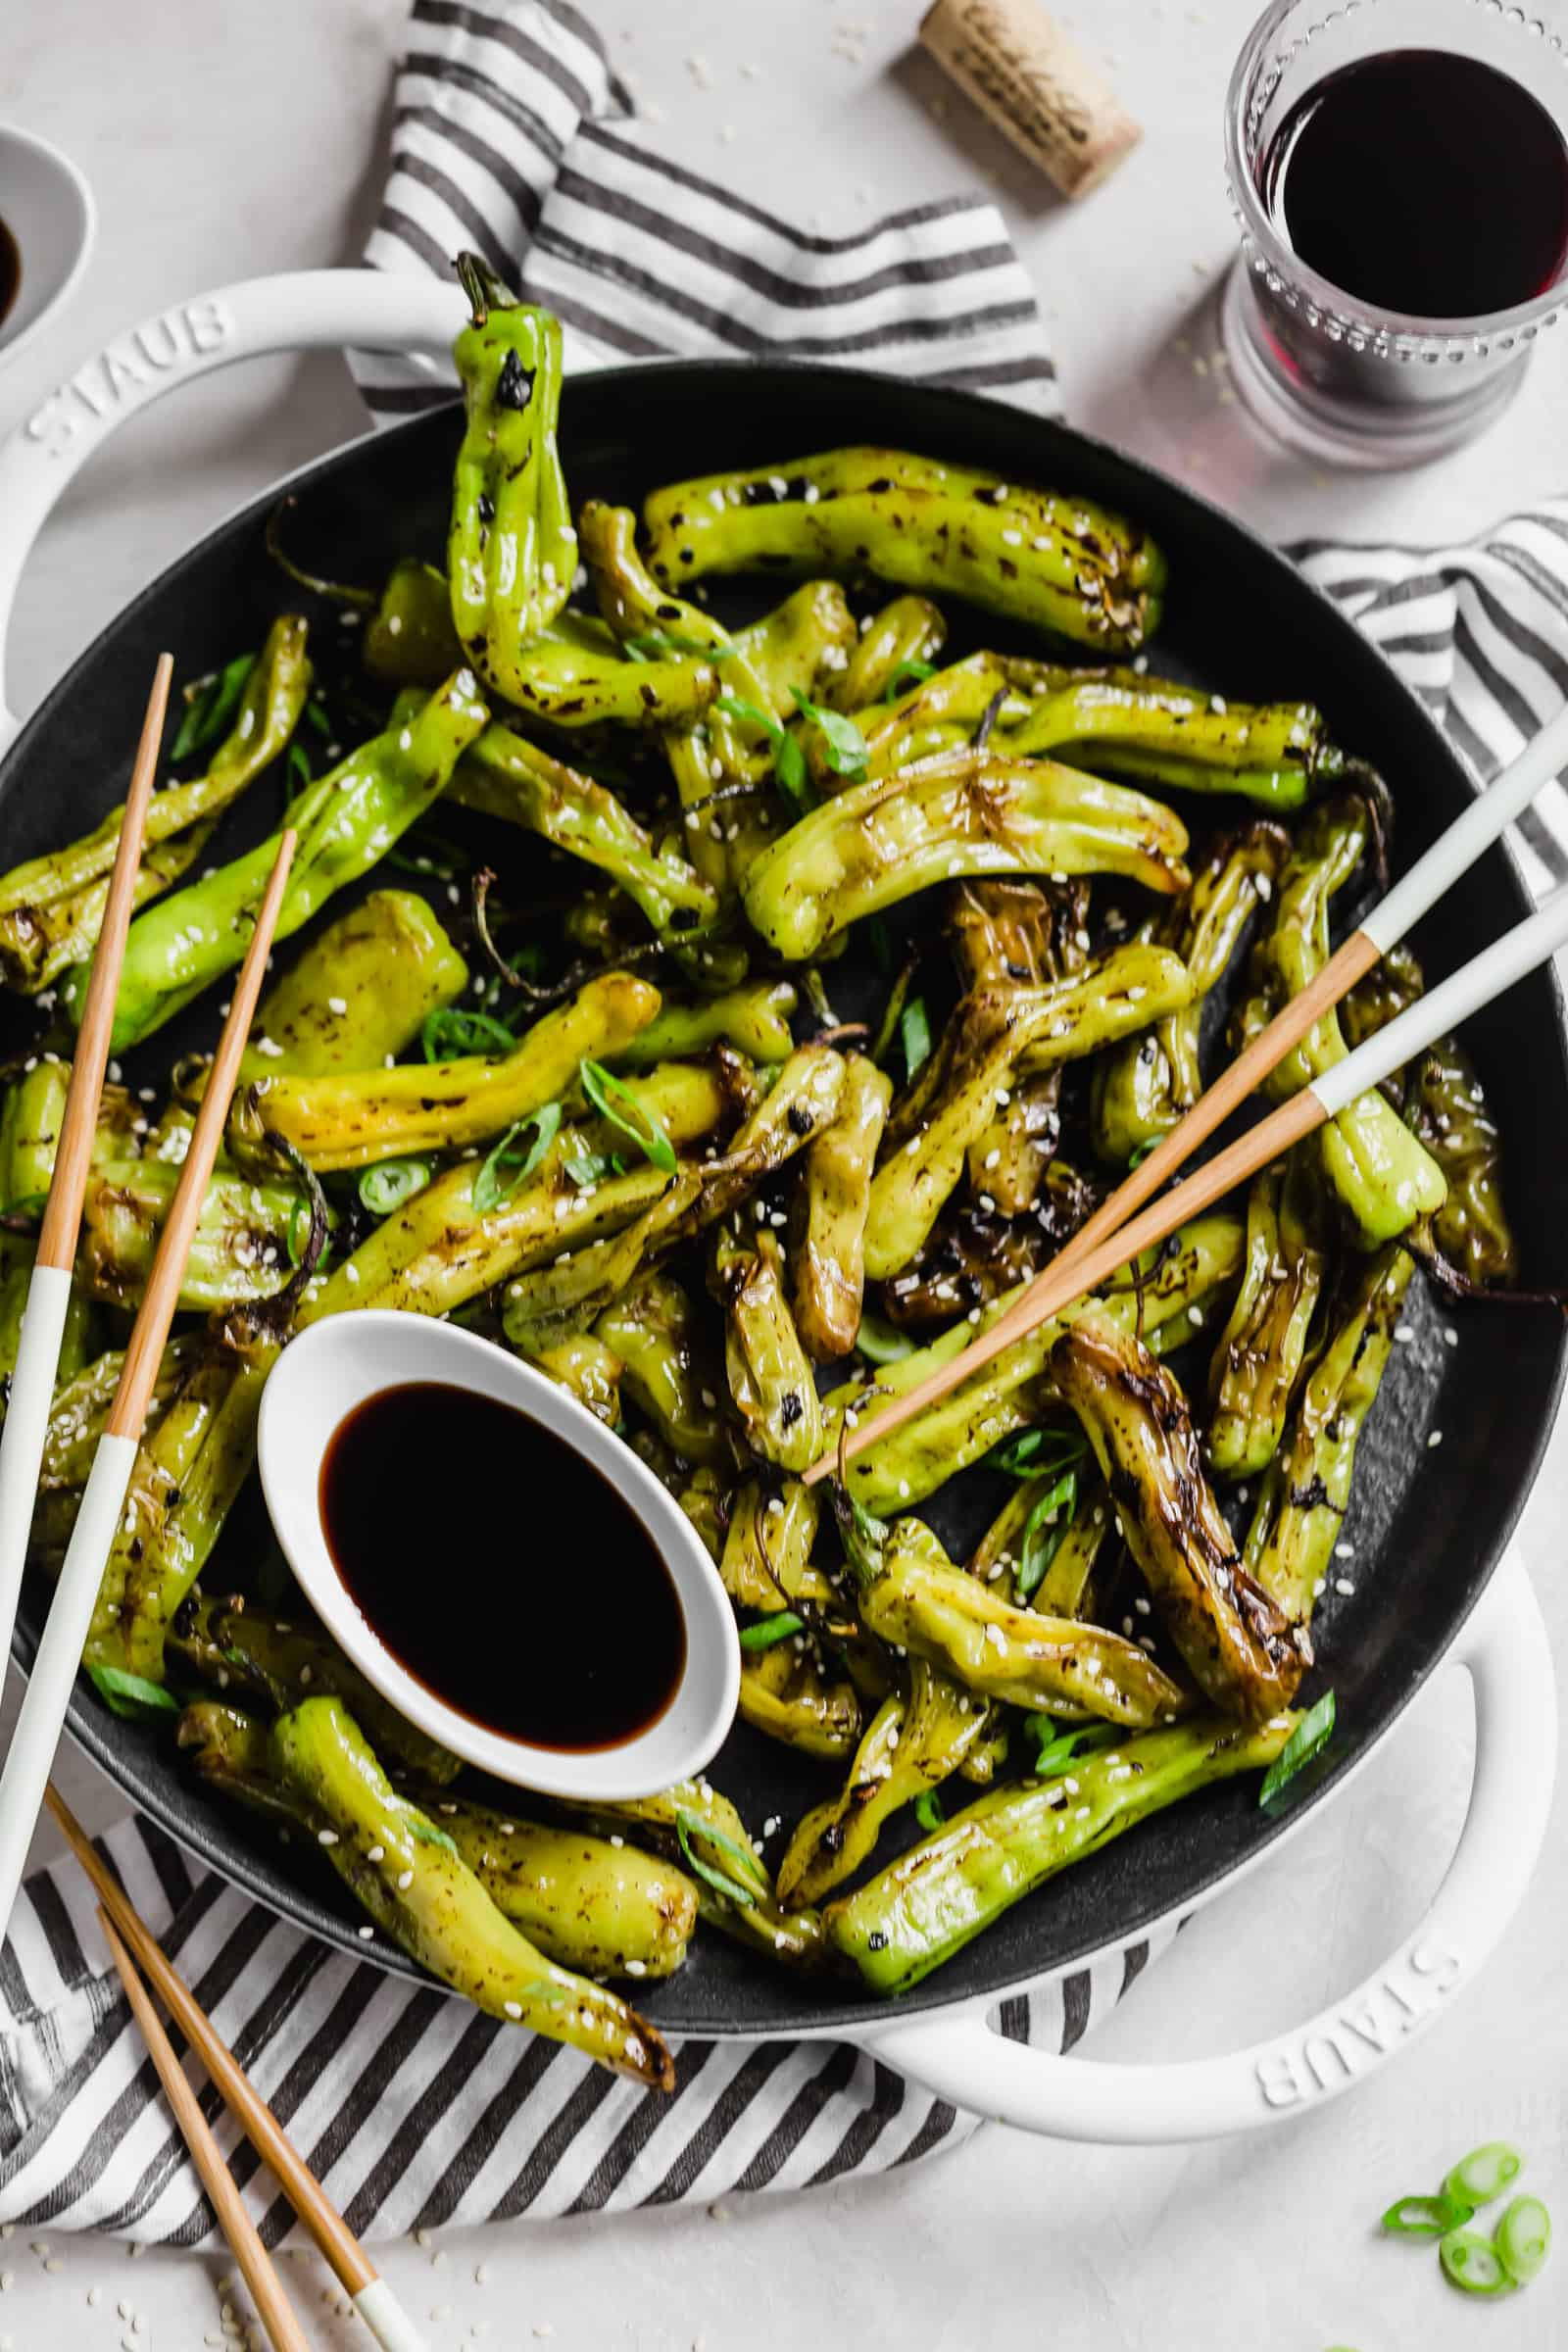 Blistered shisito peppers with soy sauce